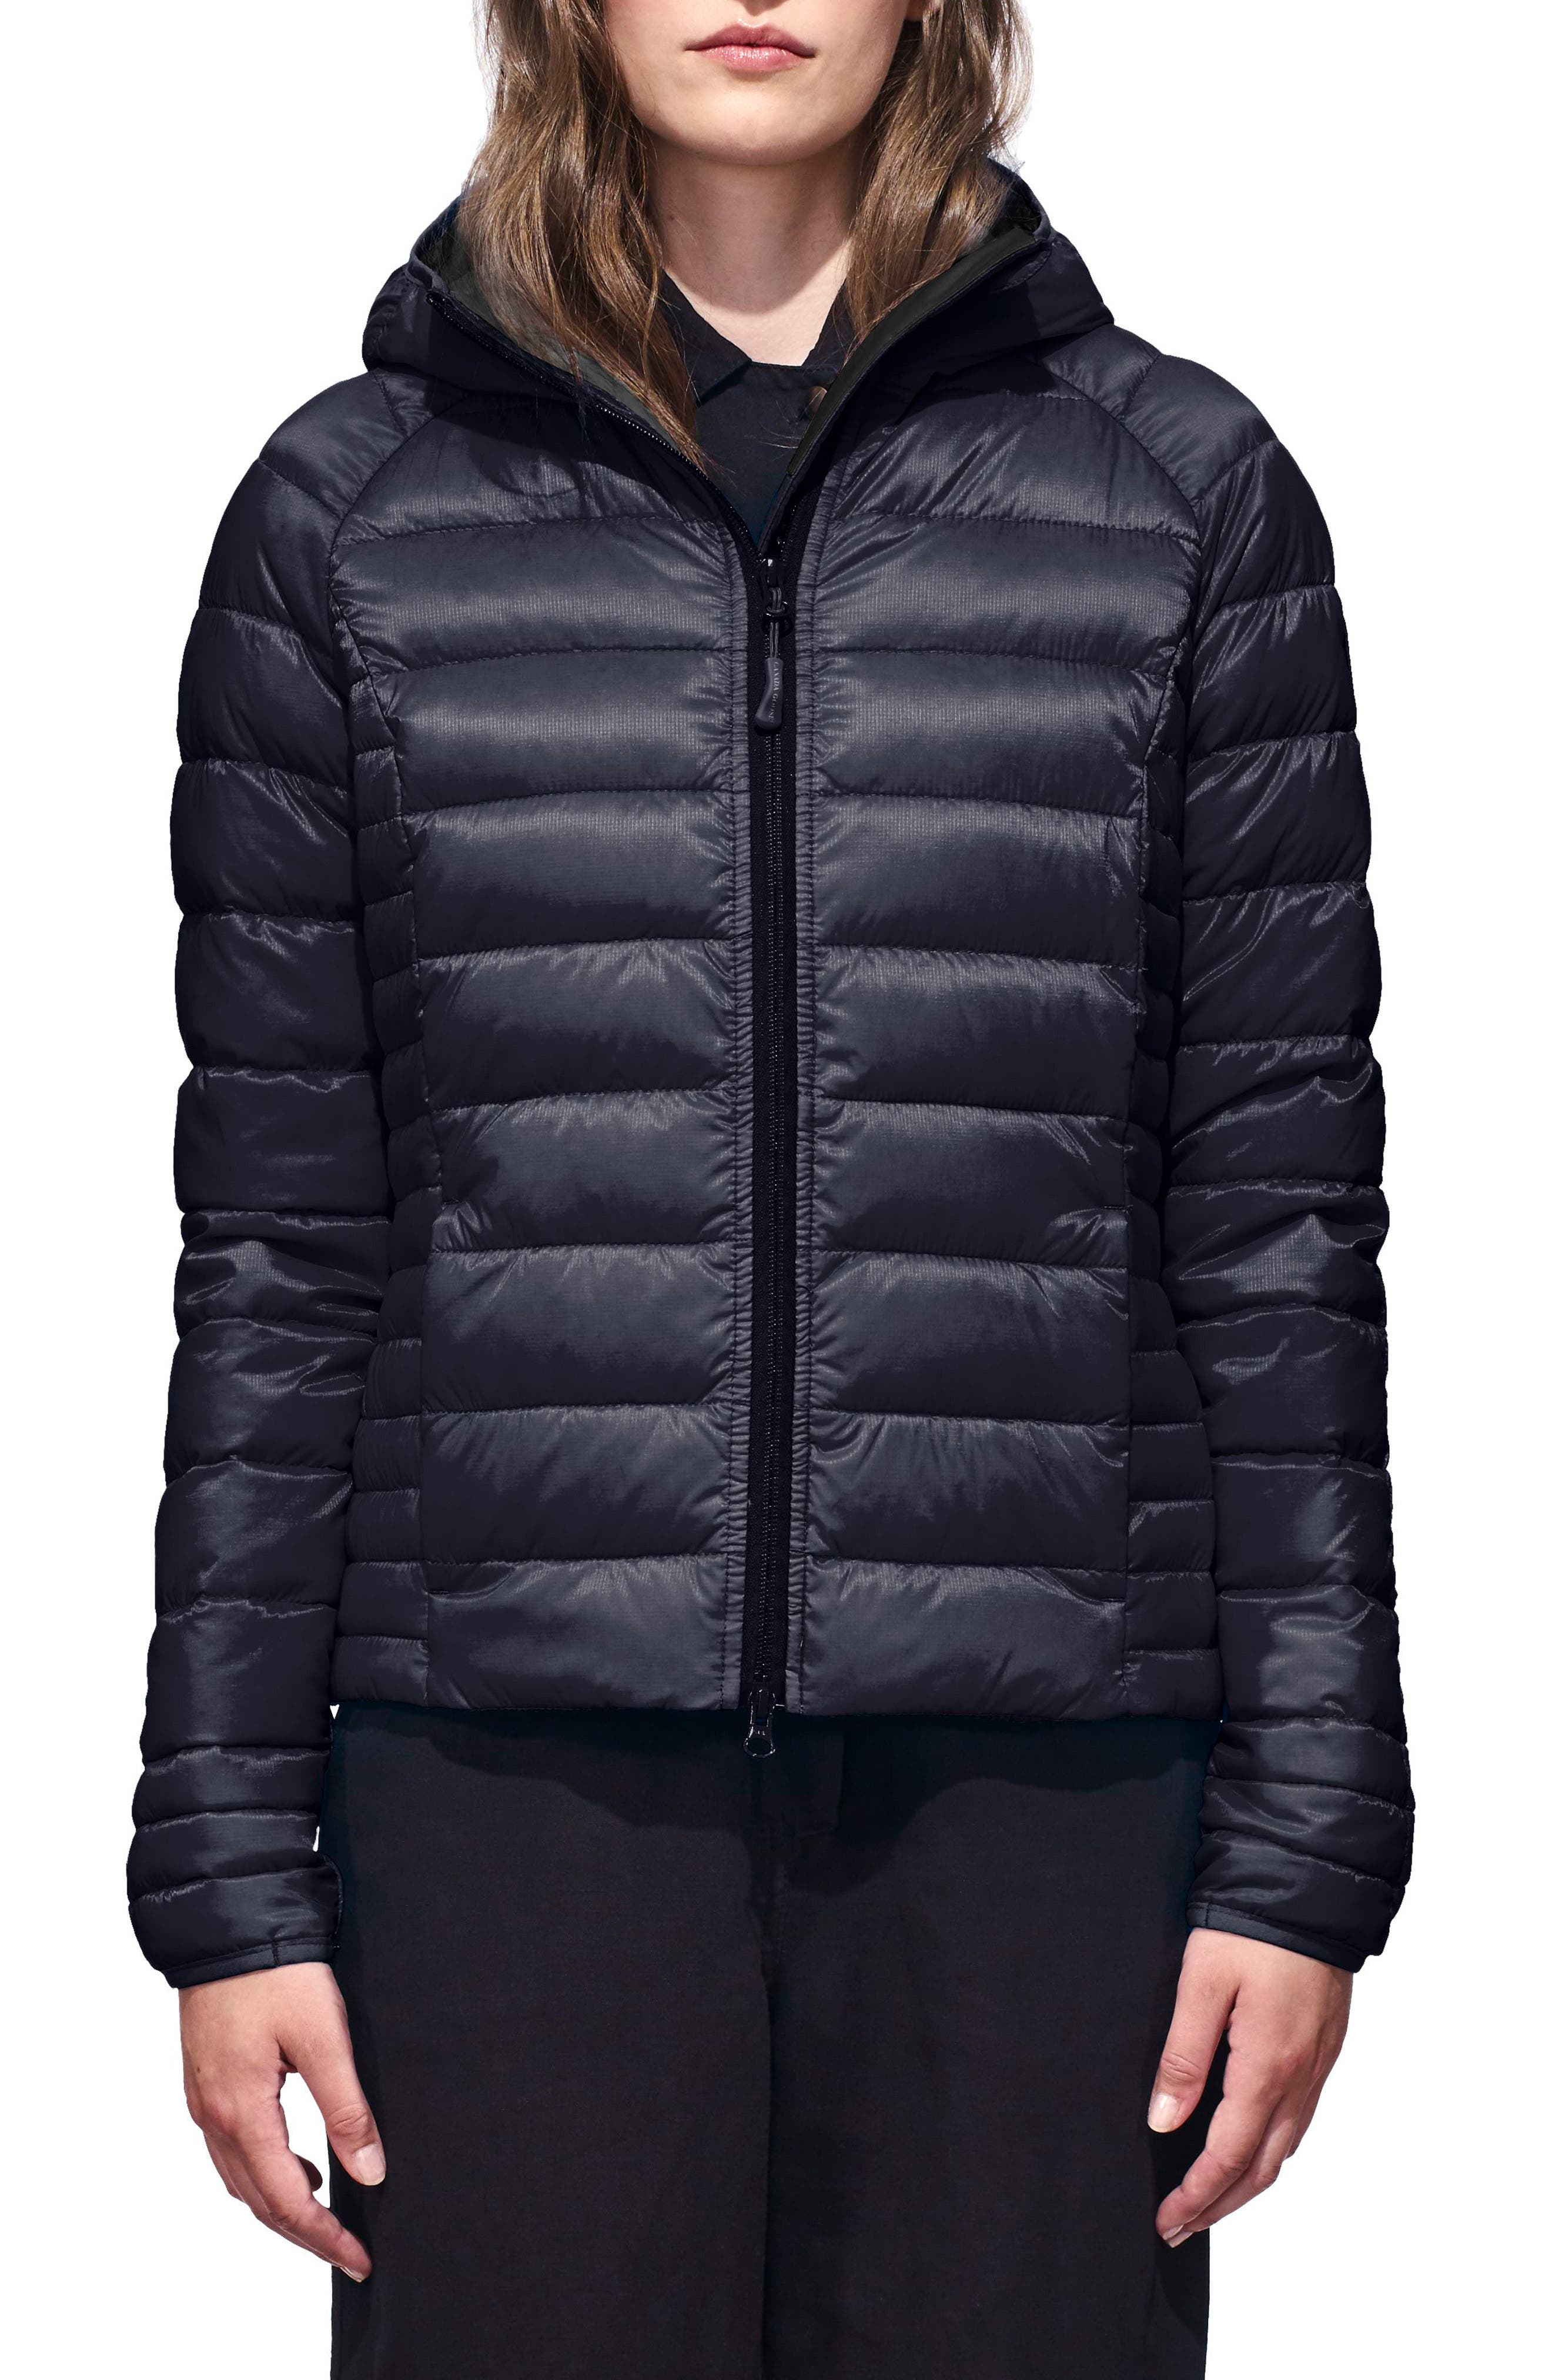 'Brookvale' Packable Hooded Quilted Down Jacket,                             Main thumbnail 1, color,                             ADMIRAL BLUE/ BLACK